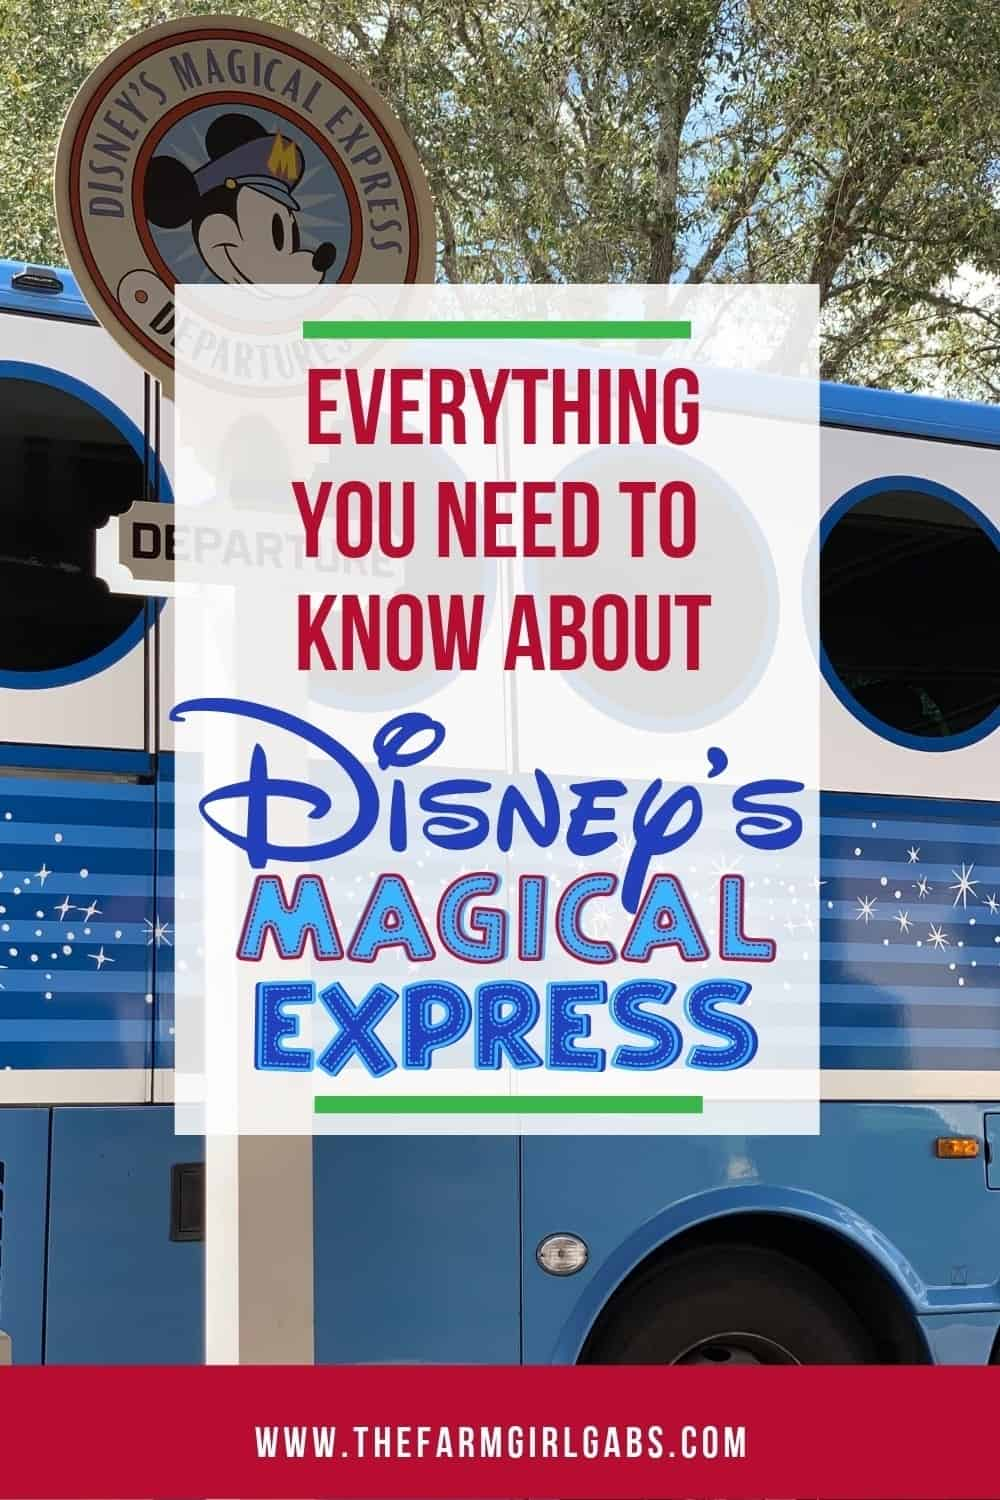 If you have never taken Disney's Magical Express, you may have a lot of questions about how it works and where it goes! If you are staying at a Walt Disney World Resort Hotel, you can take advantage of Disney's Magical Express to help you get to and from the airport at no additional cost! If this is your first time taking the Disney Magical Express, here is everything you need to know before you ride! #WaltDisneyWorld #DisneyTips #MagicalExpress #DisneyMagicalExpress #FAmilyTravel